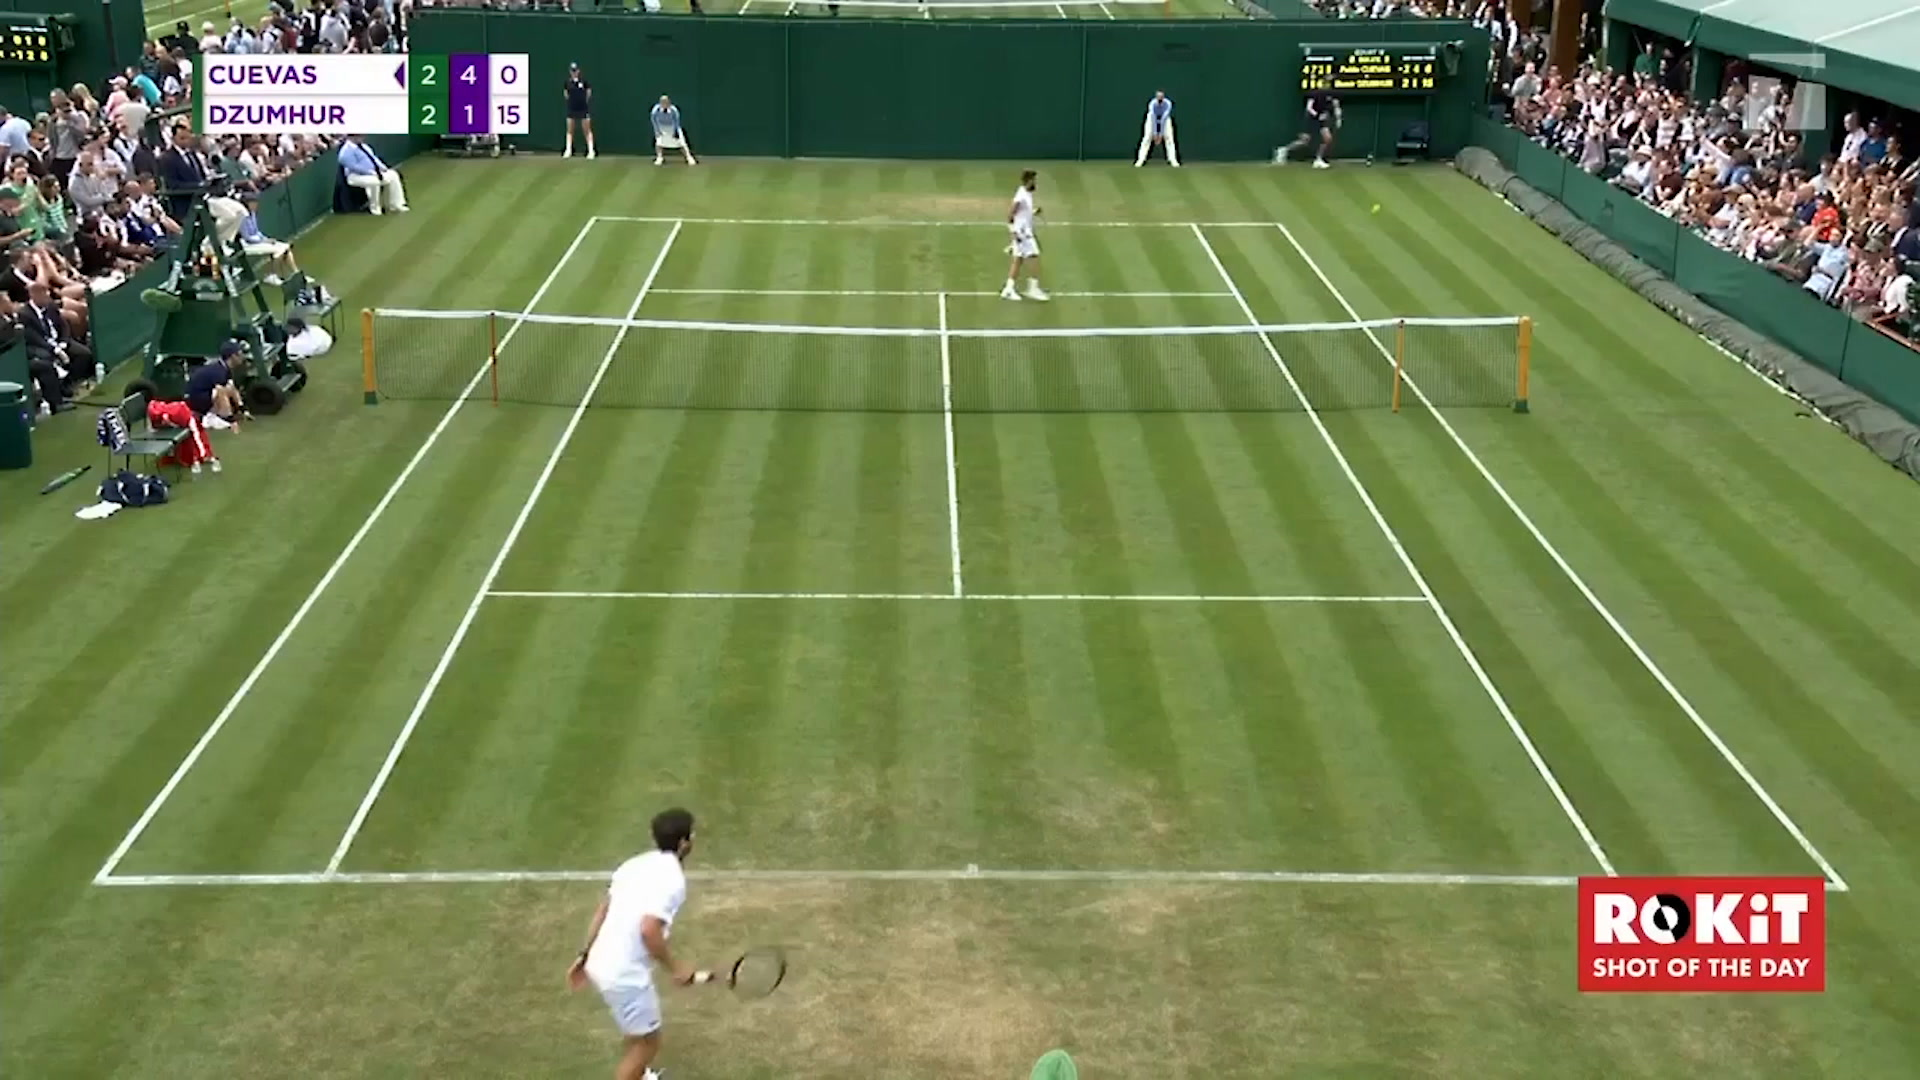 WATCH: Cuevas hits likely contender for Wimbledon top shot